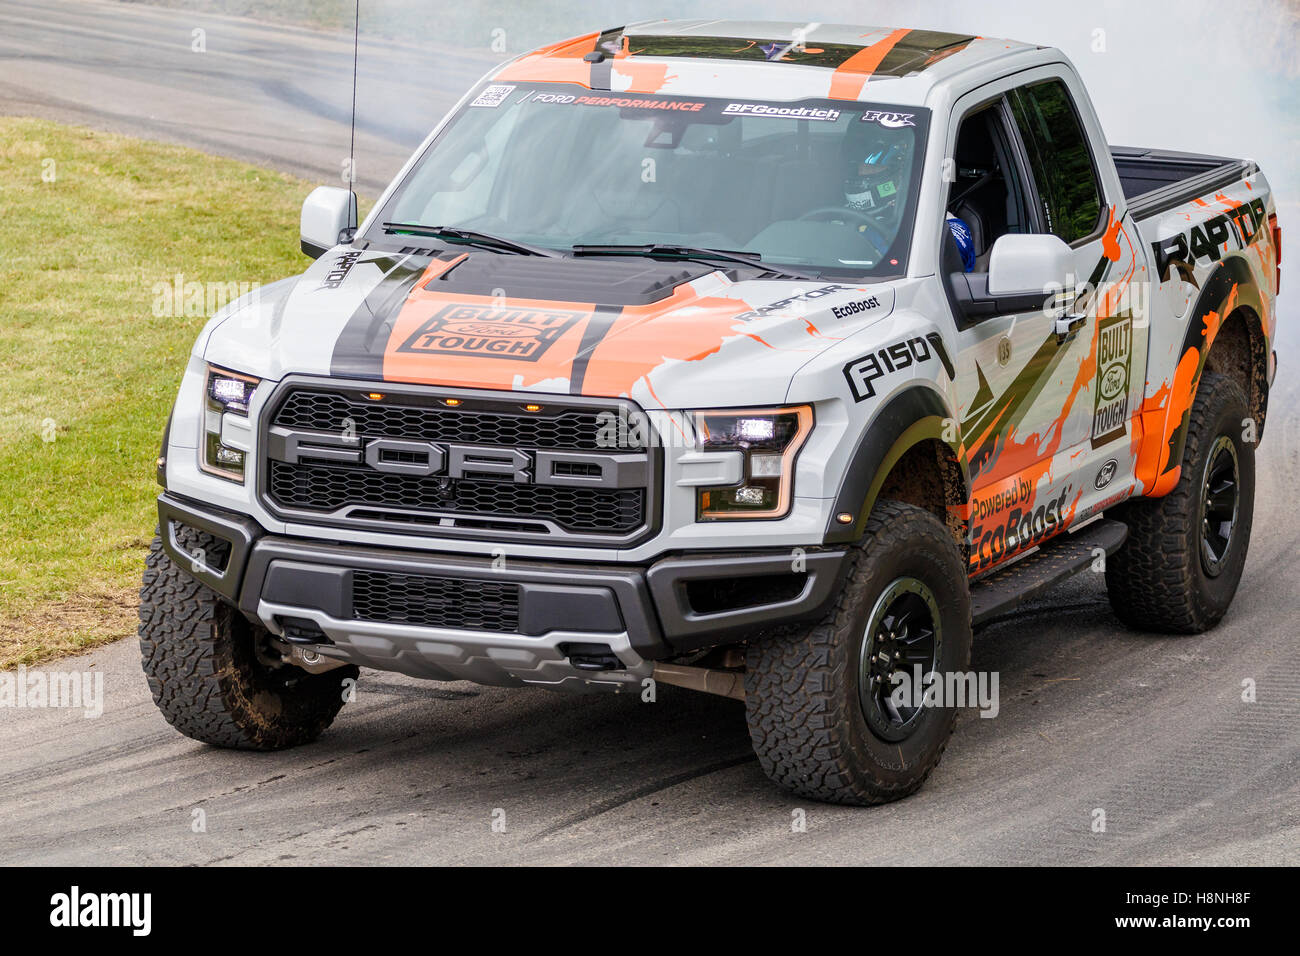 2016 Ford F-150 Raptor desert truck racer with driver Ben Collins at the 2016 Goodwood Festival of Speed, Sussex, - Stock Image